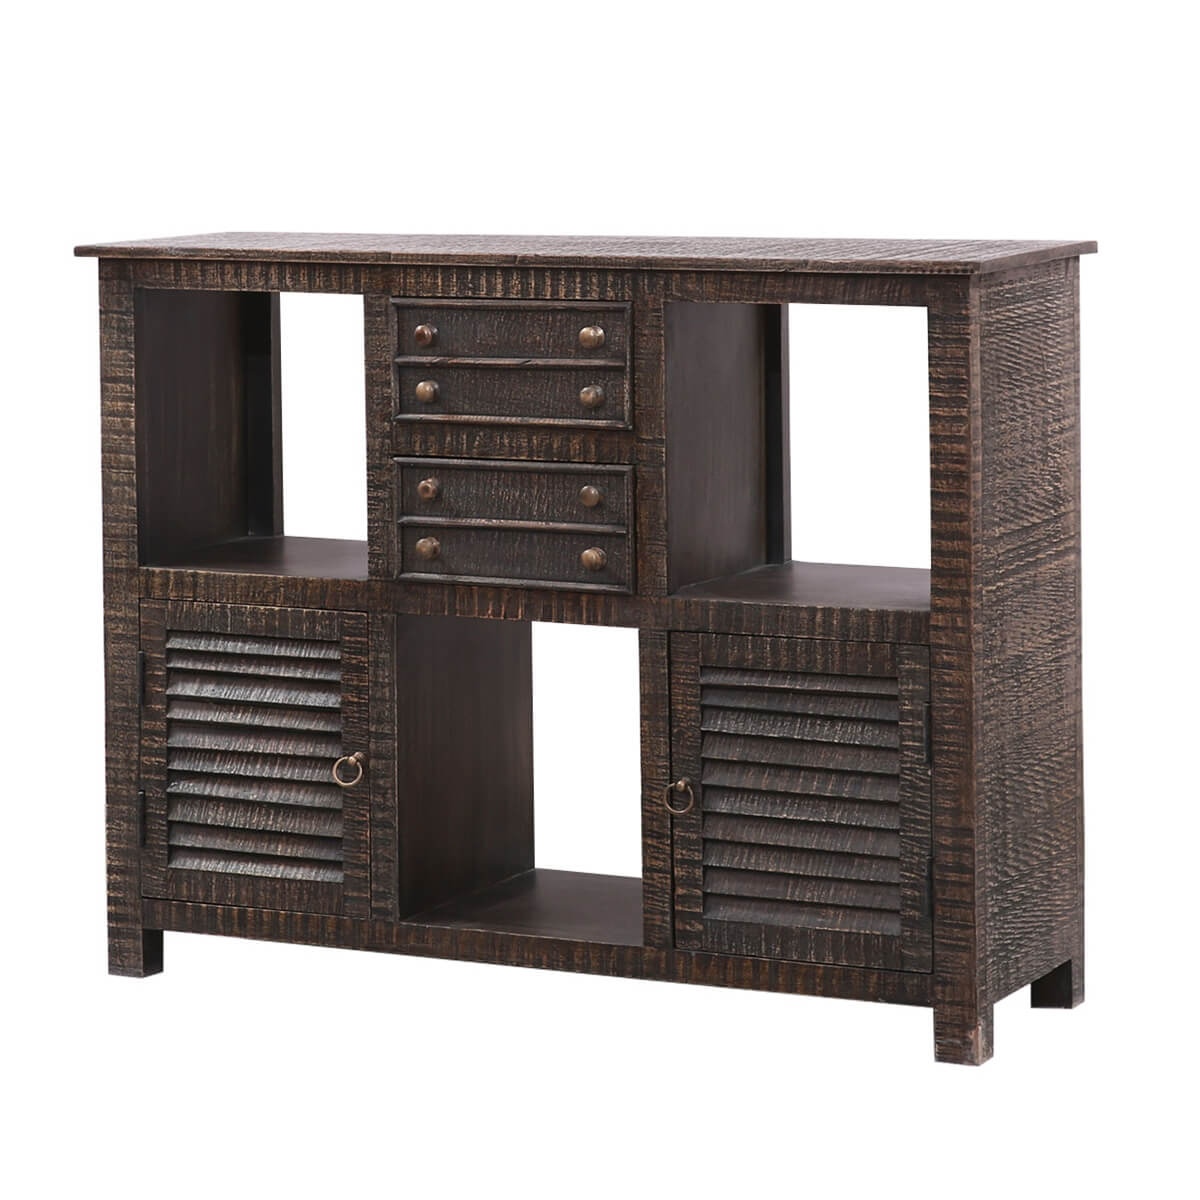 Chiltern Rustic Solid Wood Contemporary Style TV Stand Media Cabinet